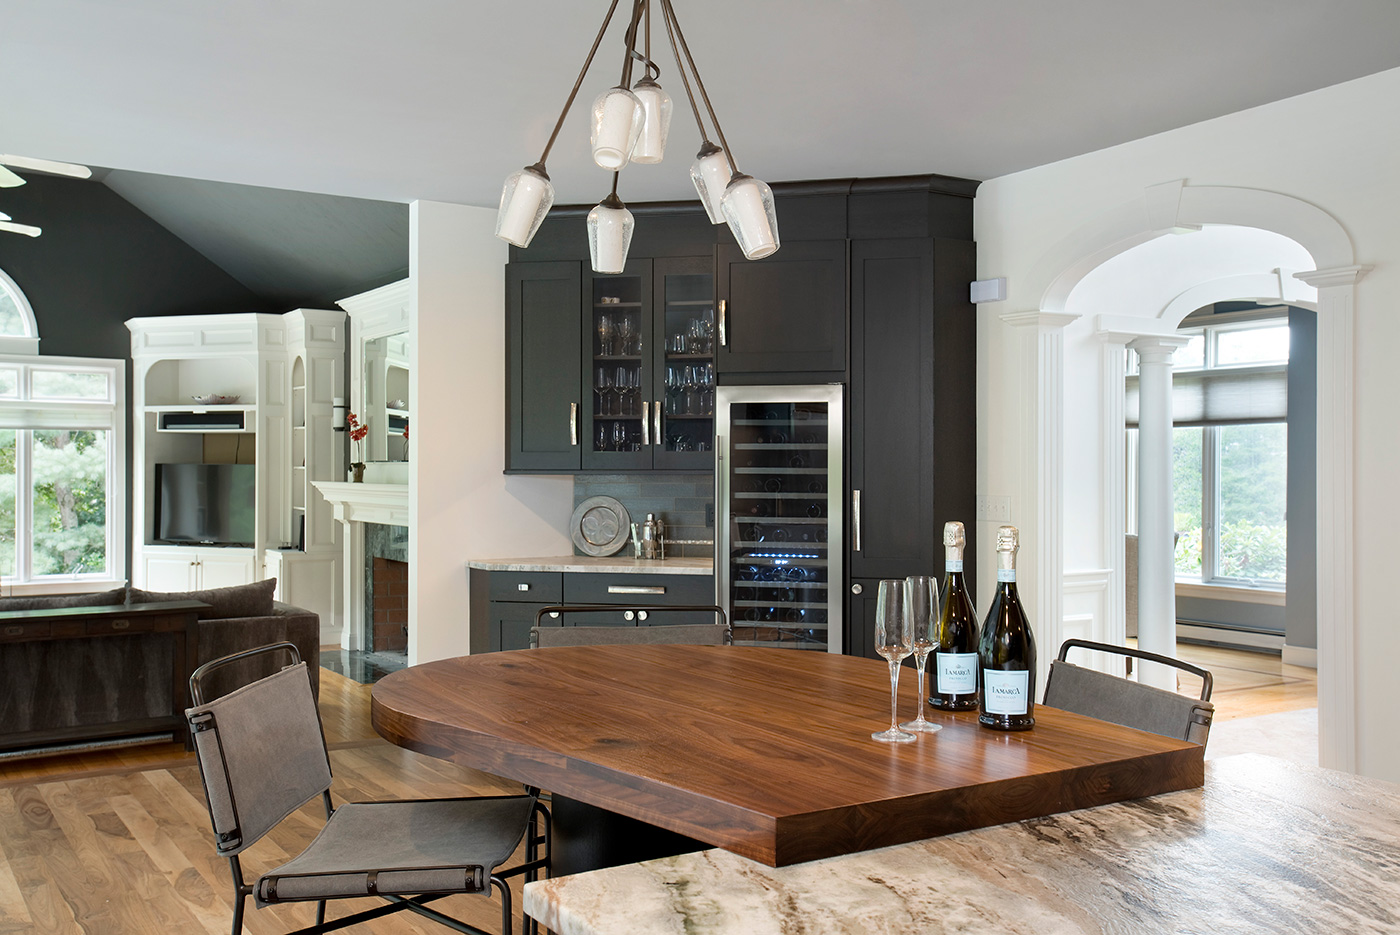 Roomscapes Cabinetry and Design Center contemporary kitchen and wine bar transformation